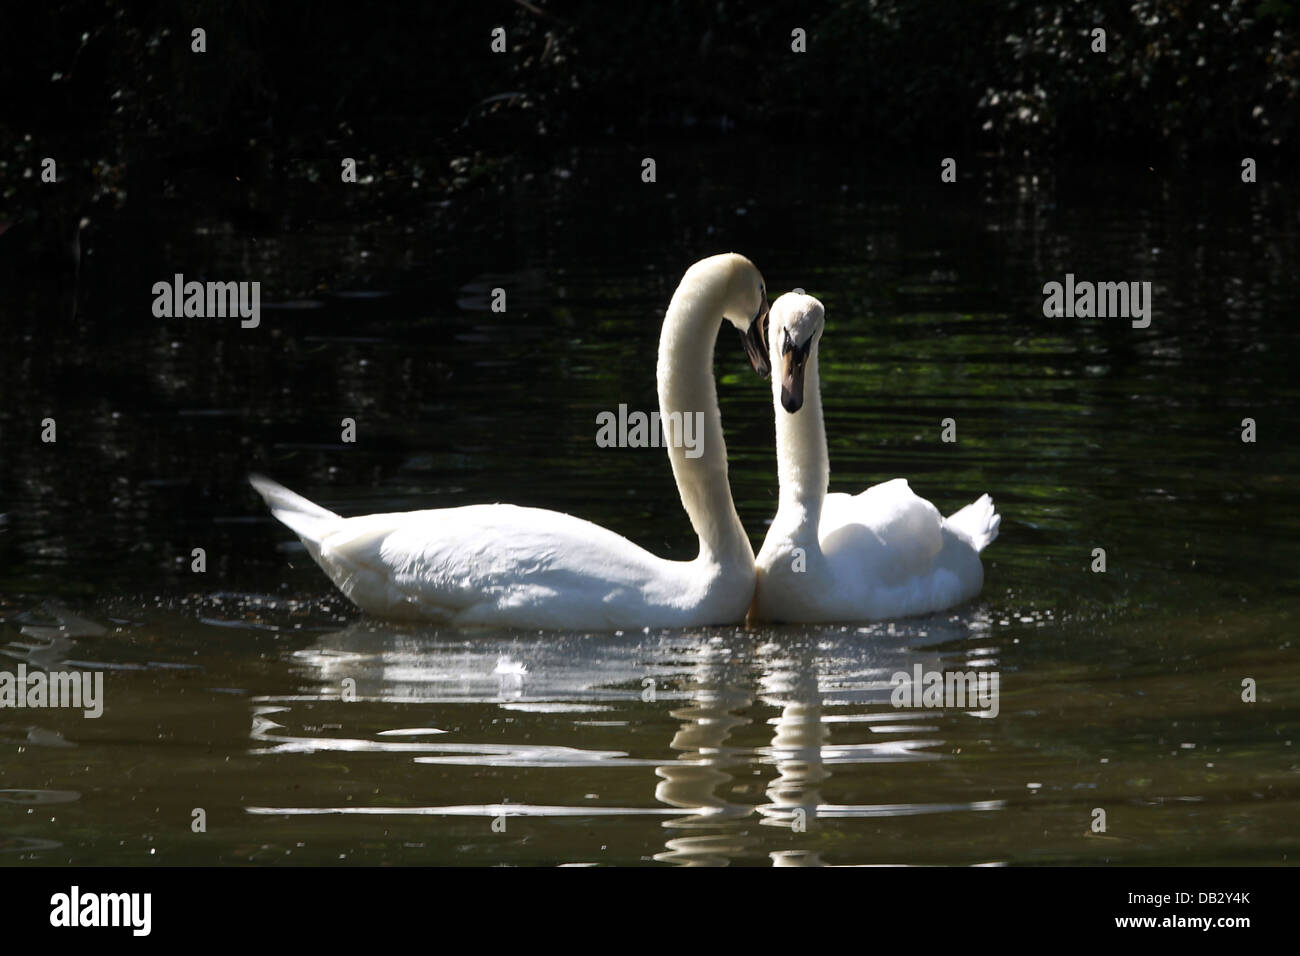 two swans dancing together on a small pond Stock Photo